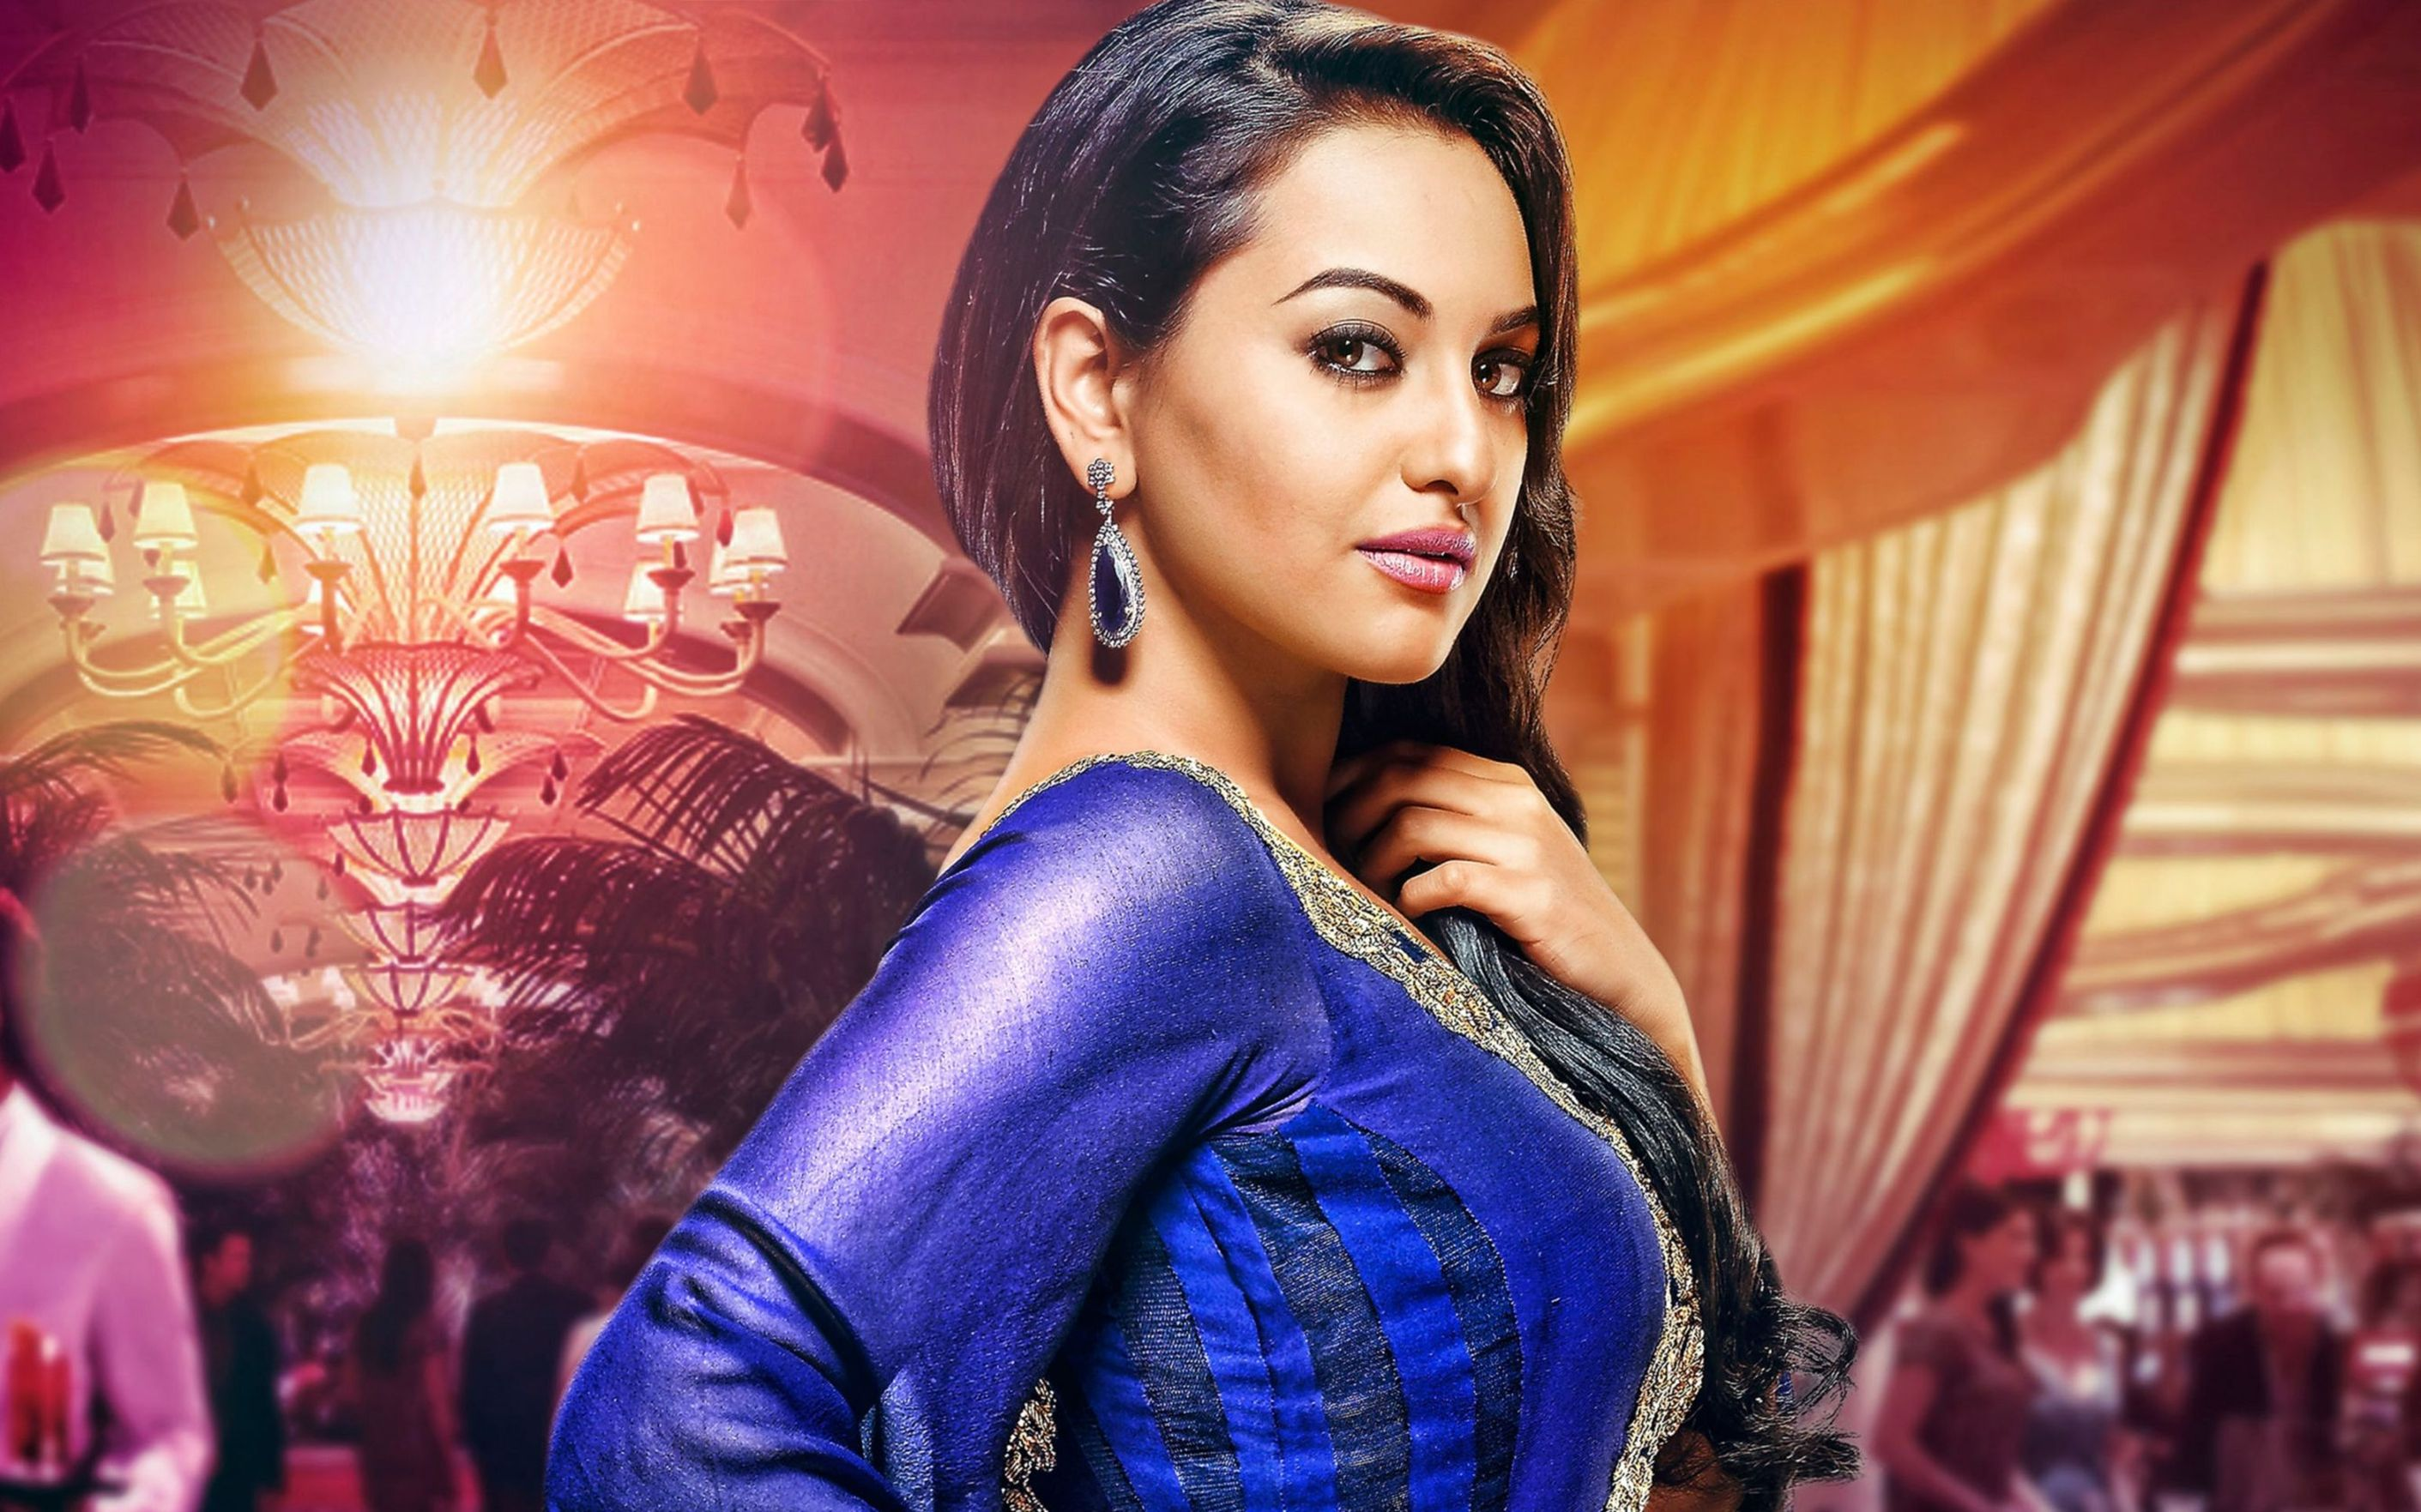 indian actress sonakshi sinha wallpaper: desktop hd wallpaper